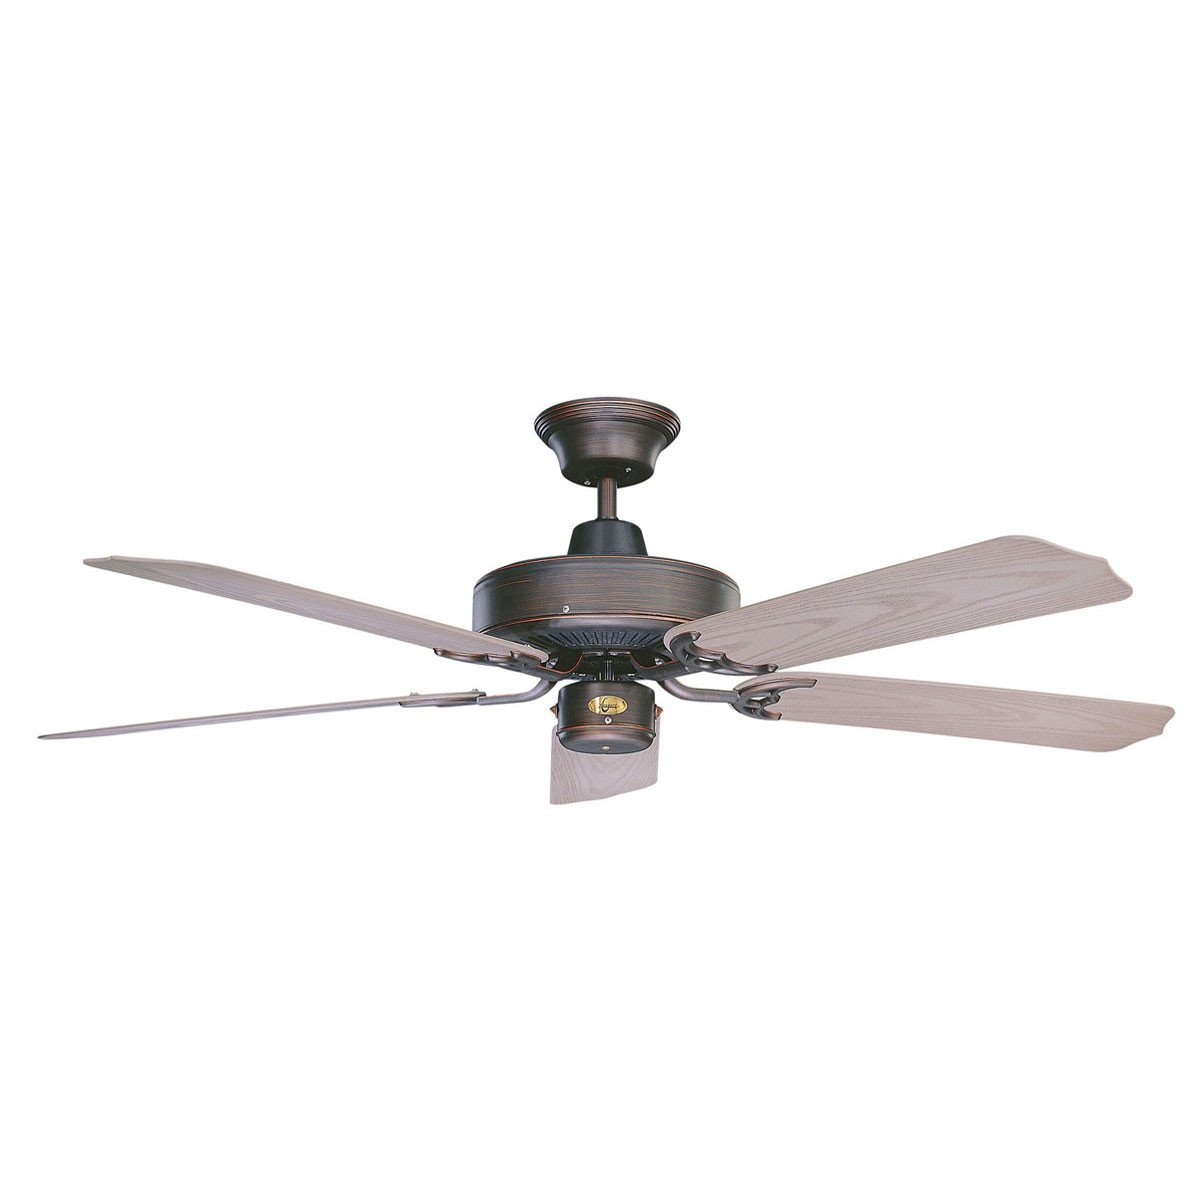 "Concord Fans 52"" Wet Location Outdoor Oil Rubbed Bronze Energy Saver Ceiling Fan"